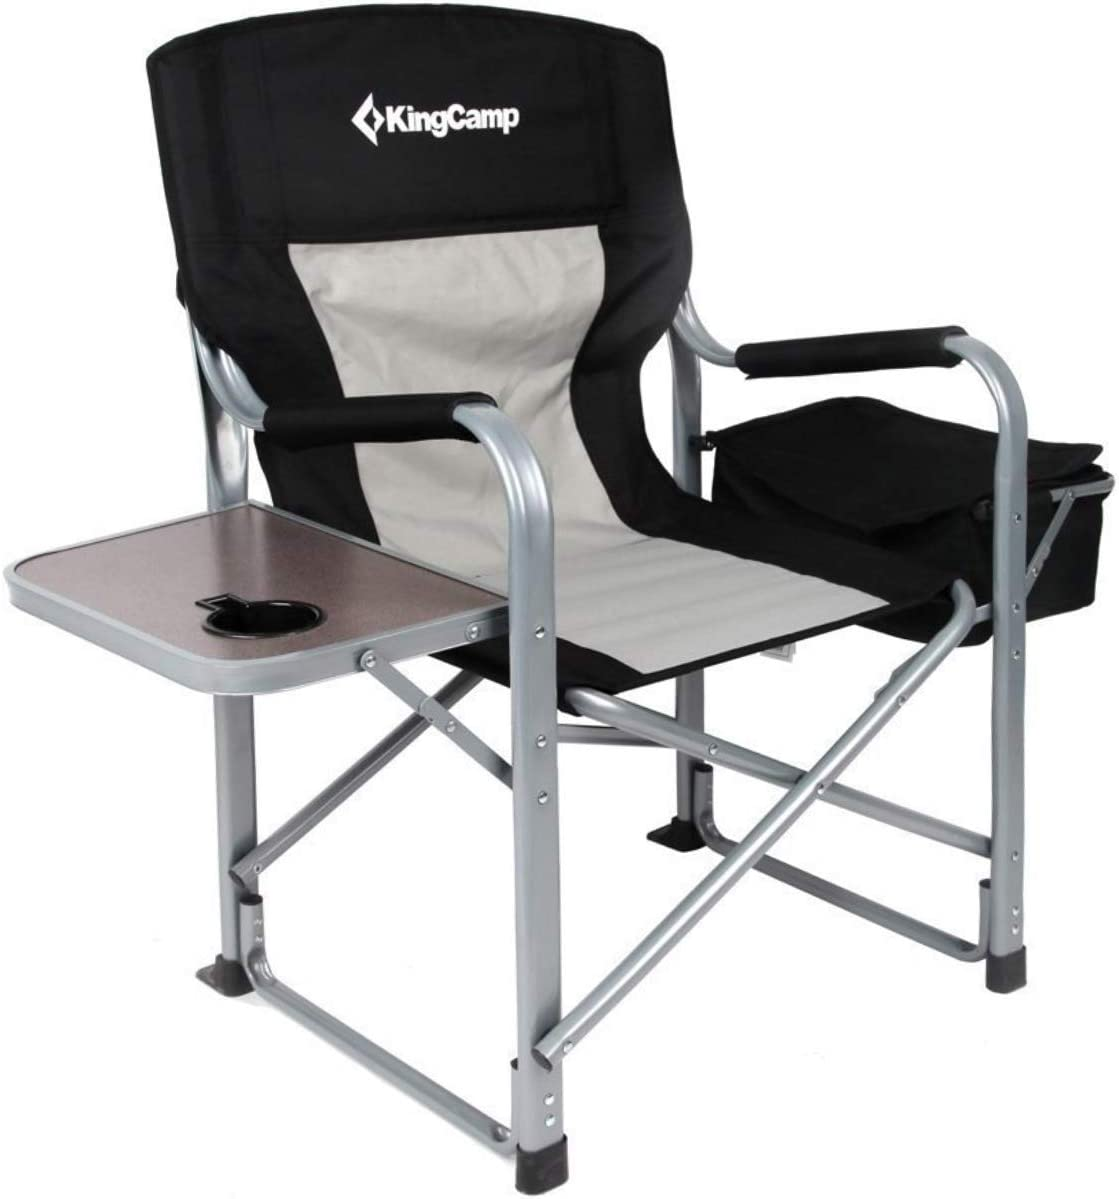 Amazon Com Kingcamp Heavy Duty Steel Camping Folding Director Chair With Cooler Bag And Side Table Sports Outdoors